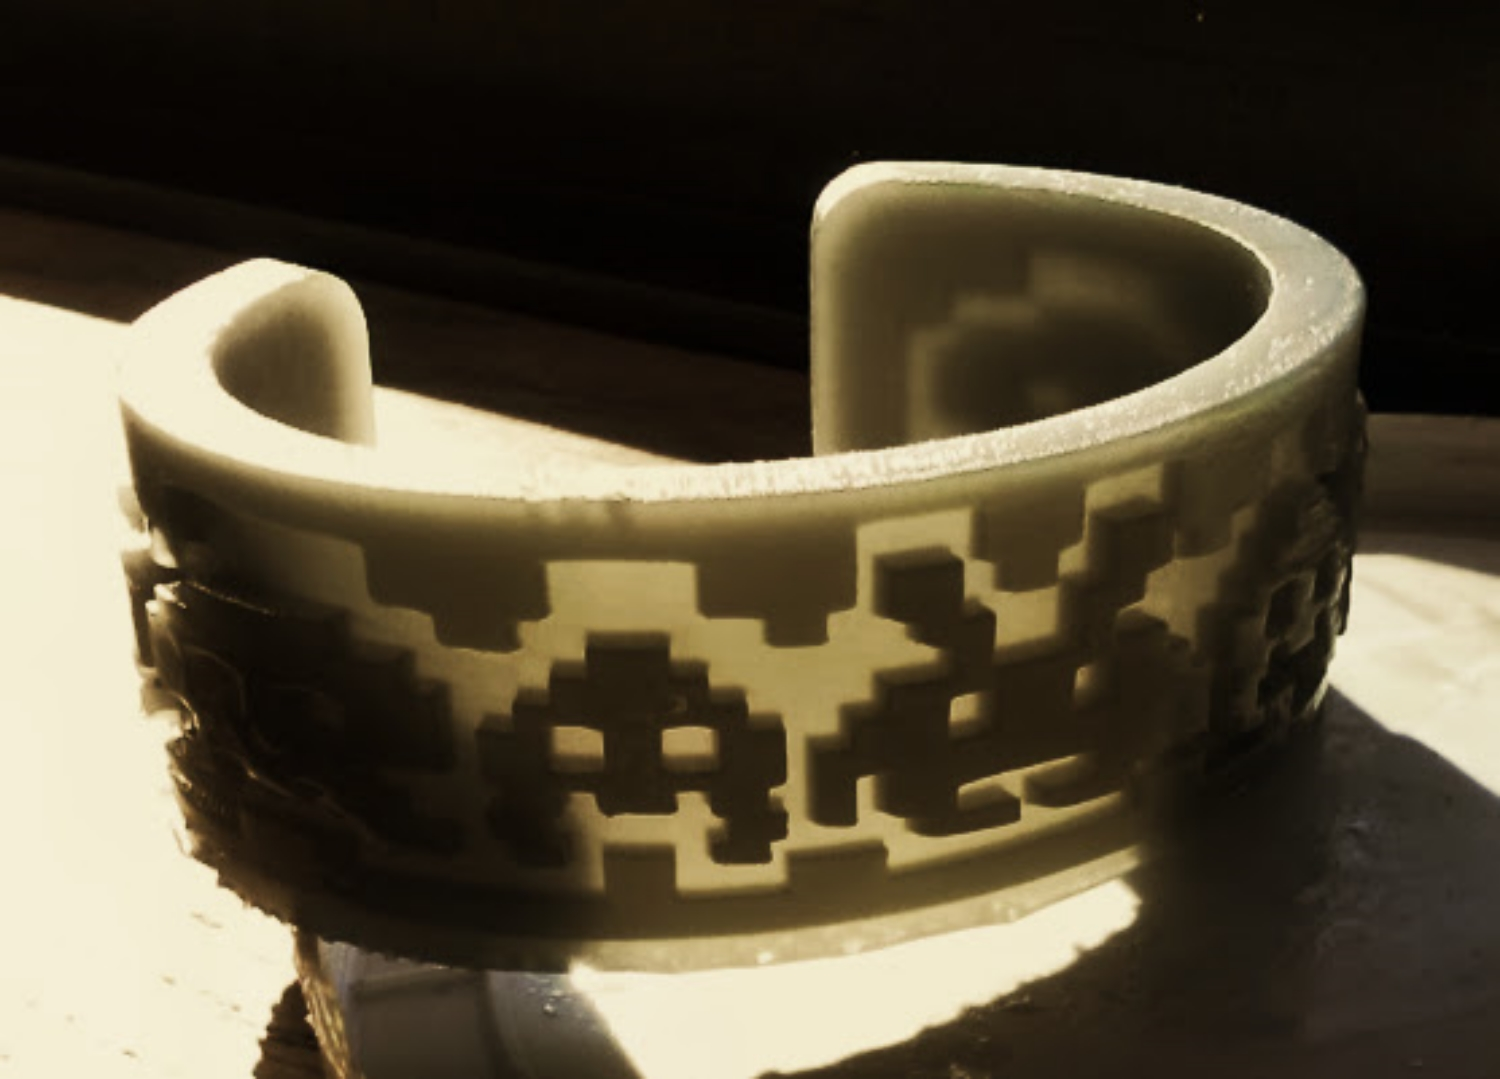 Space invaders cuff